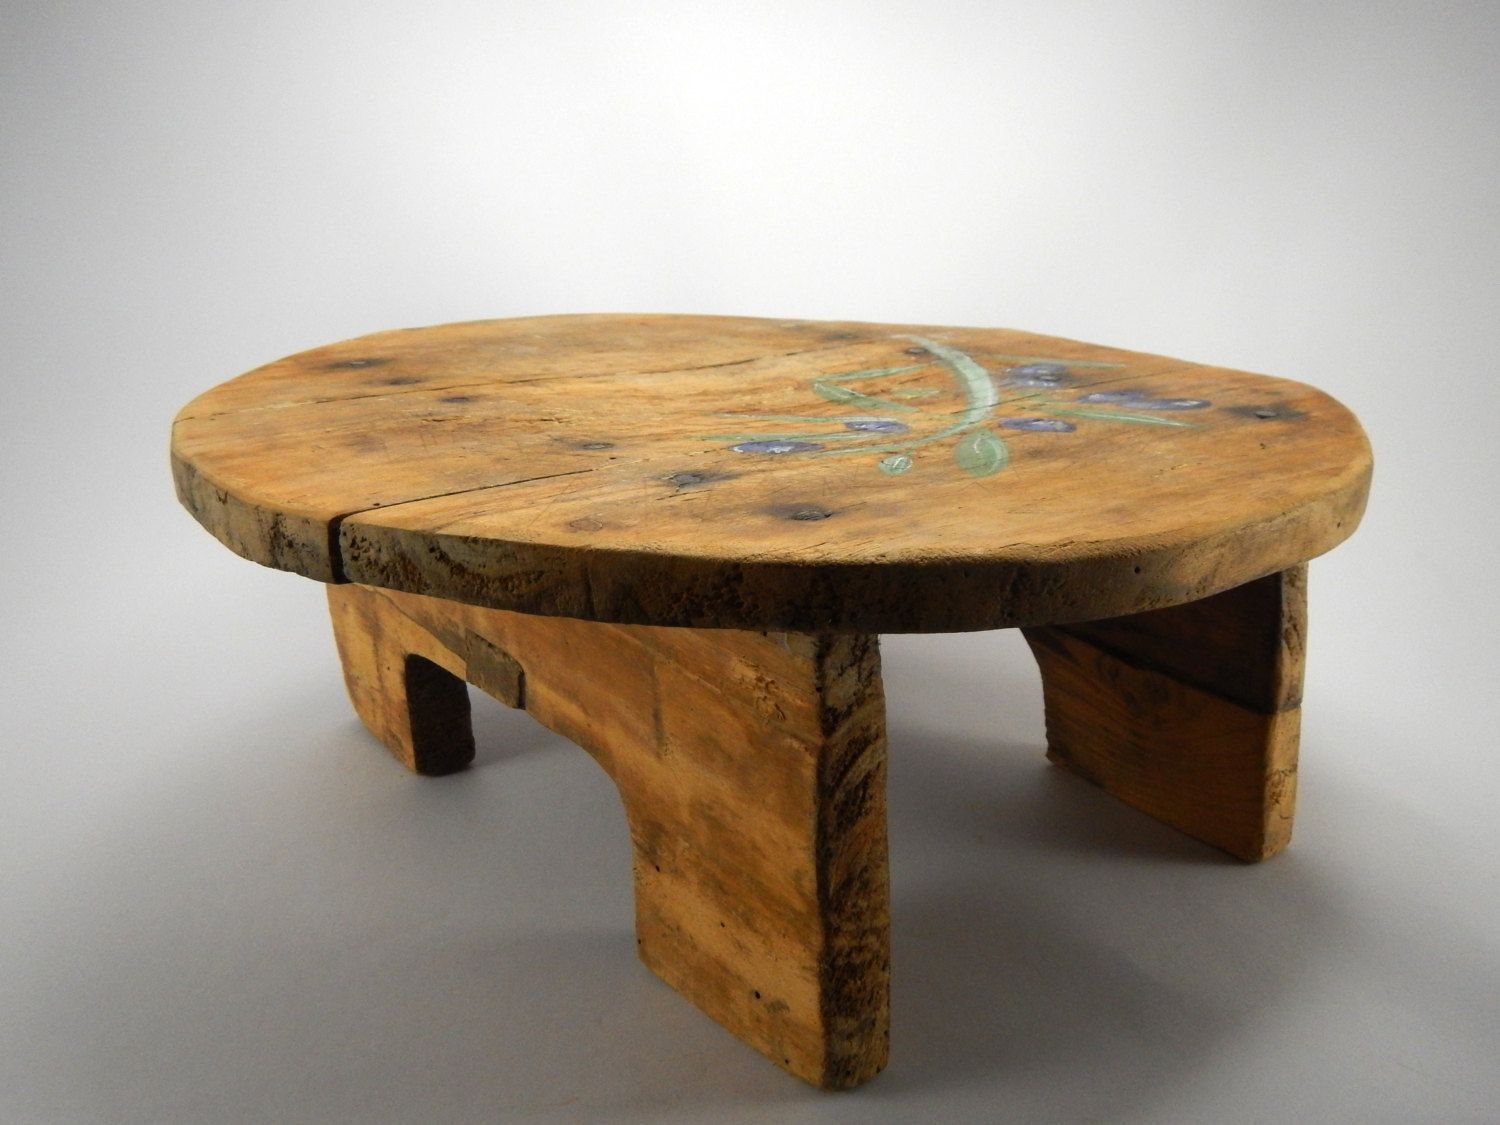 Antique Small Table, Primitive Small Wooden Table, Traditional Small Wooden  Table, Sofra Table